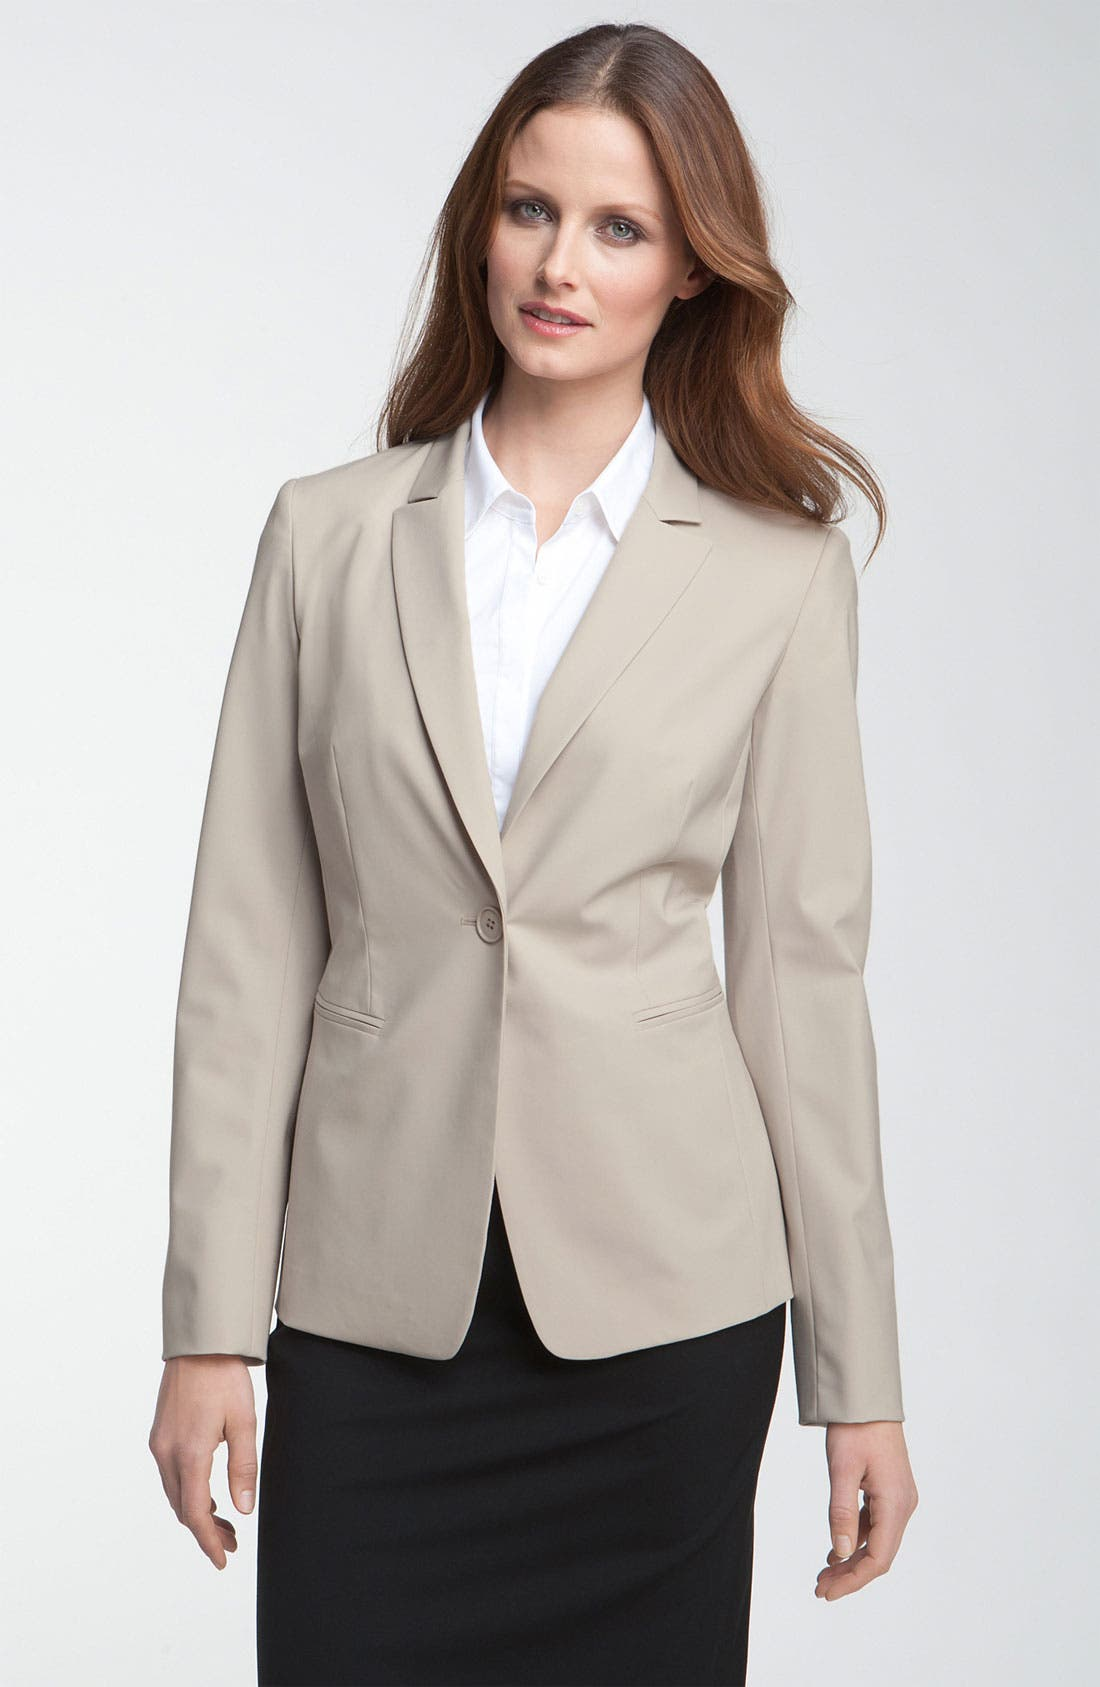 Alternate Image 1 Selected - Lafayette 148 New York 'Ashford' One Button Jacket